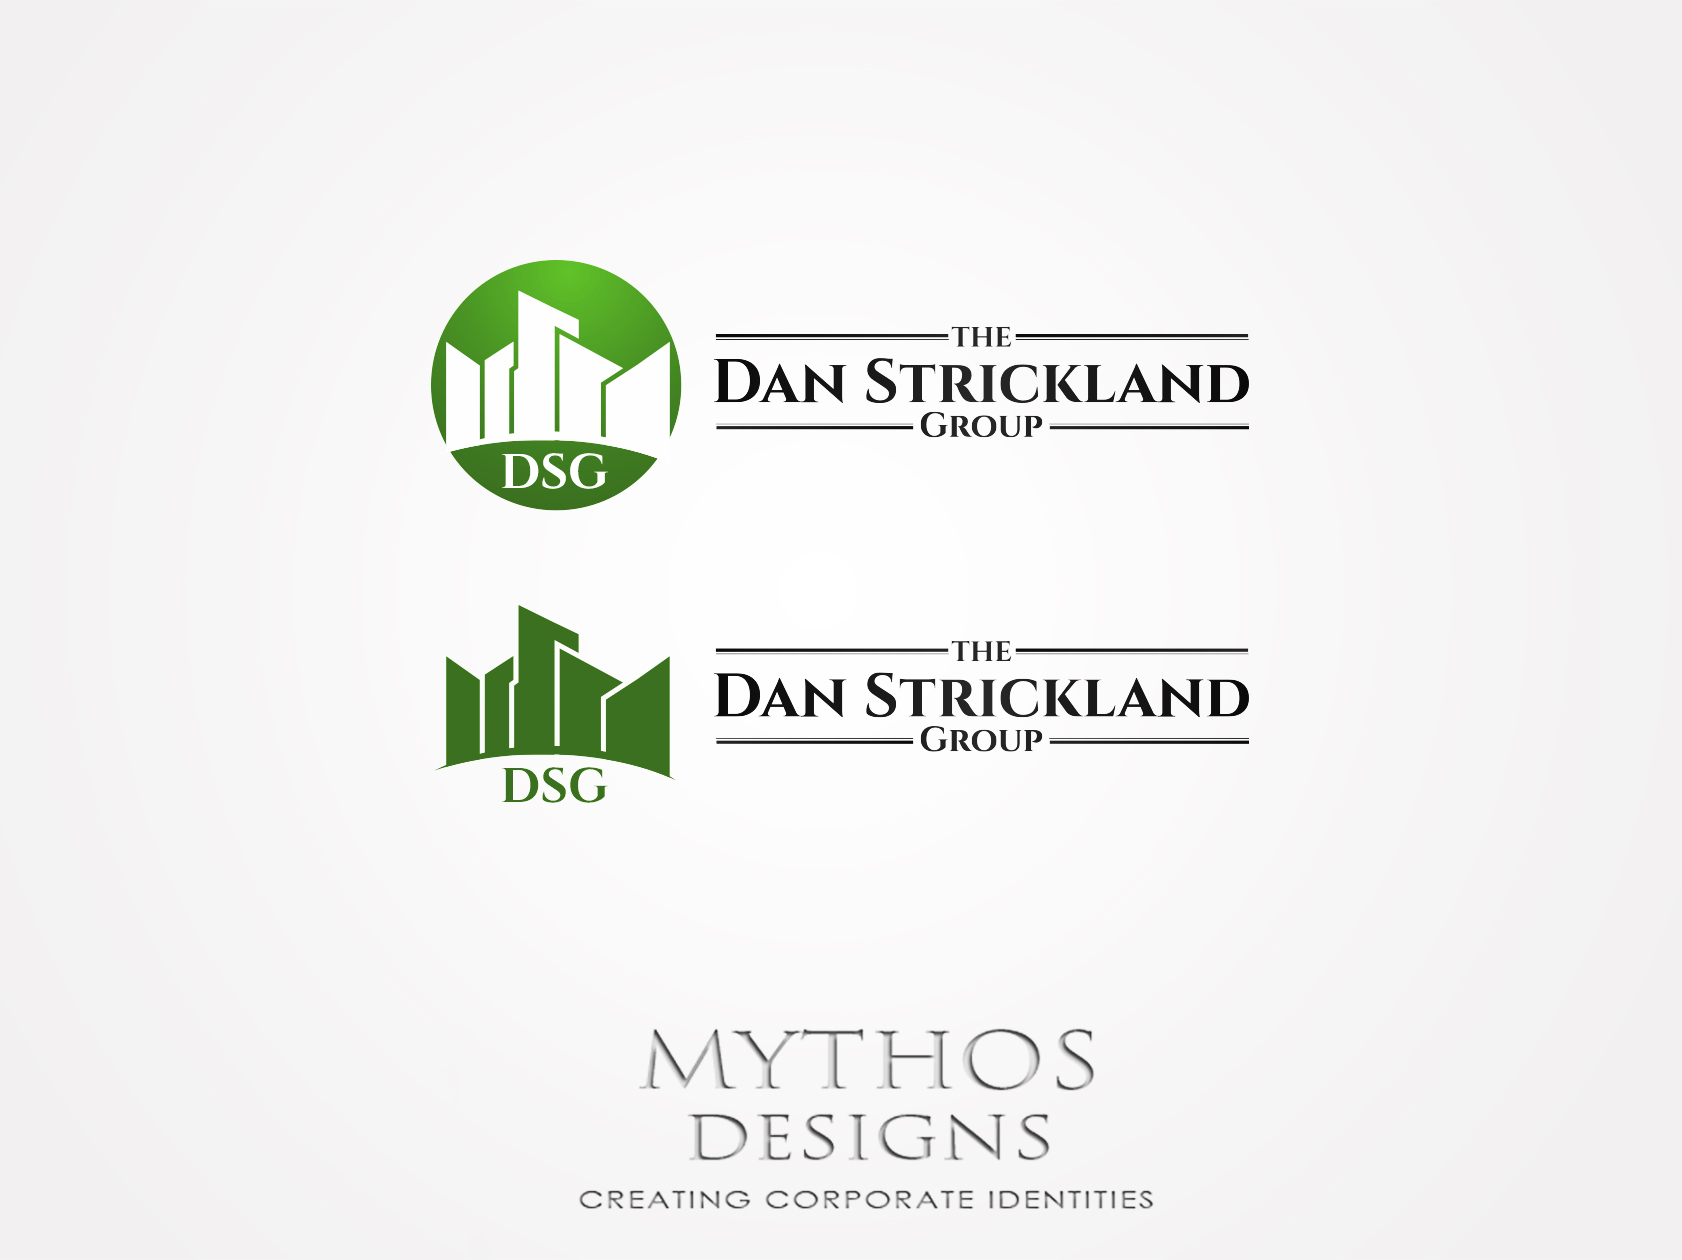 Logo Design by Mythos Designs - Entry No. 111 in the Logo Design Contest Creative Logo Design for The Dan Strickland Group.